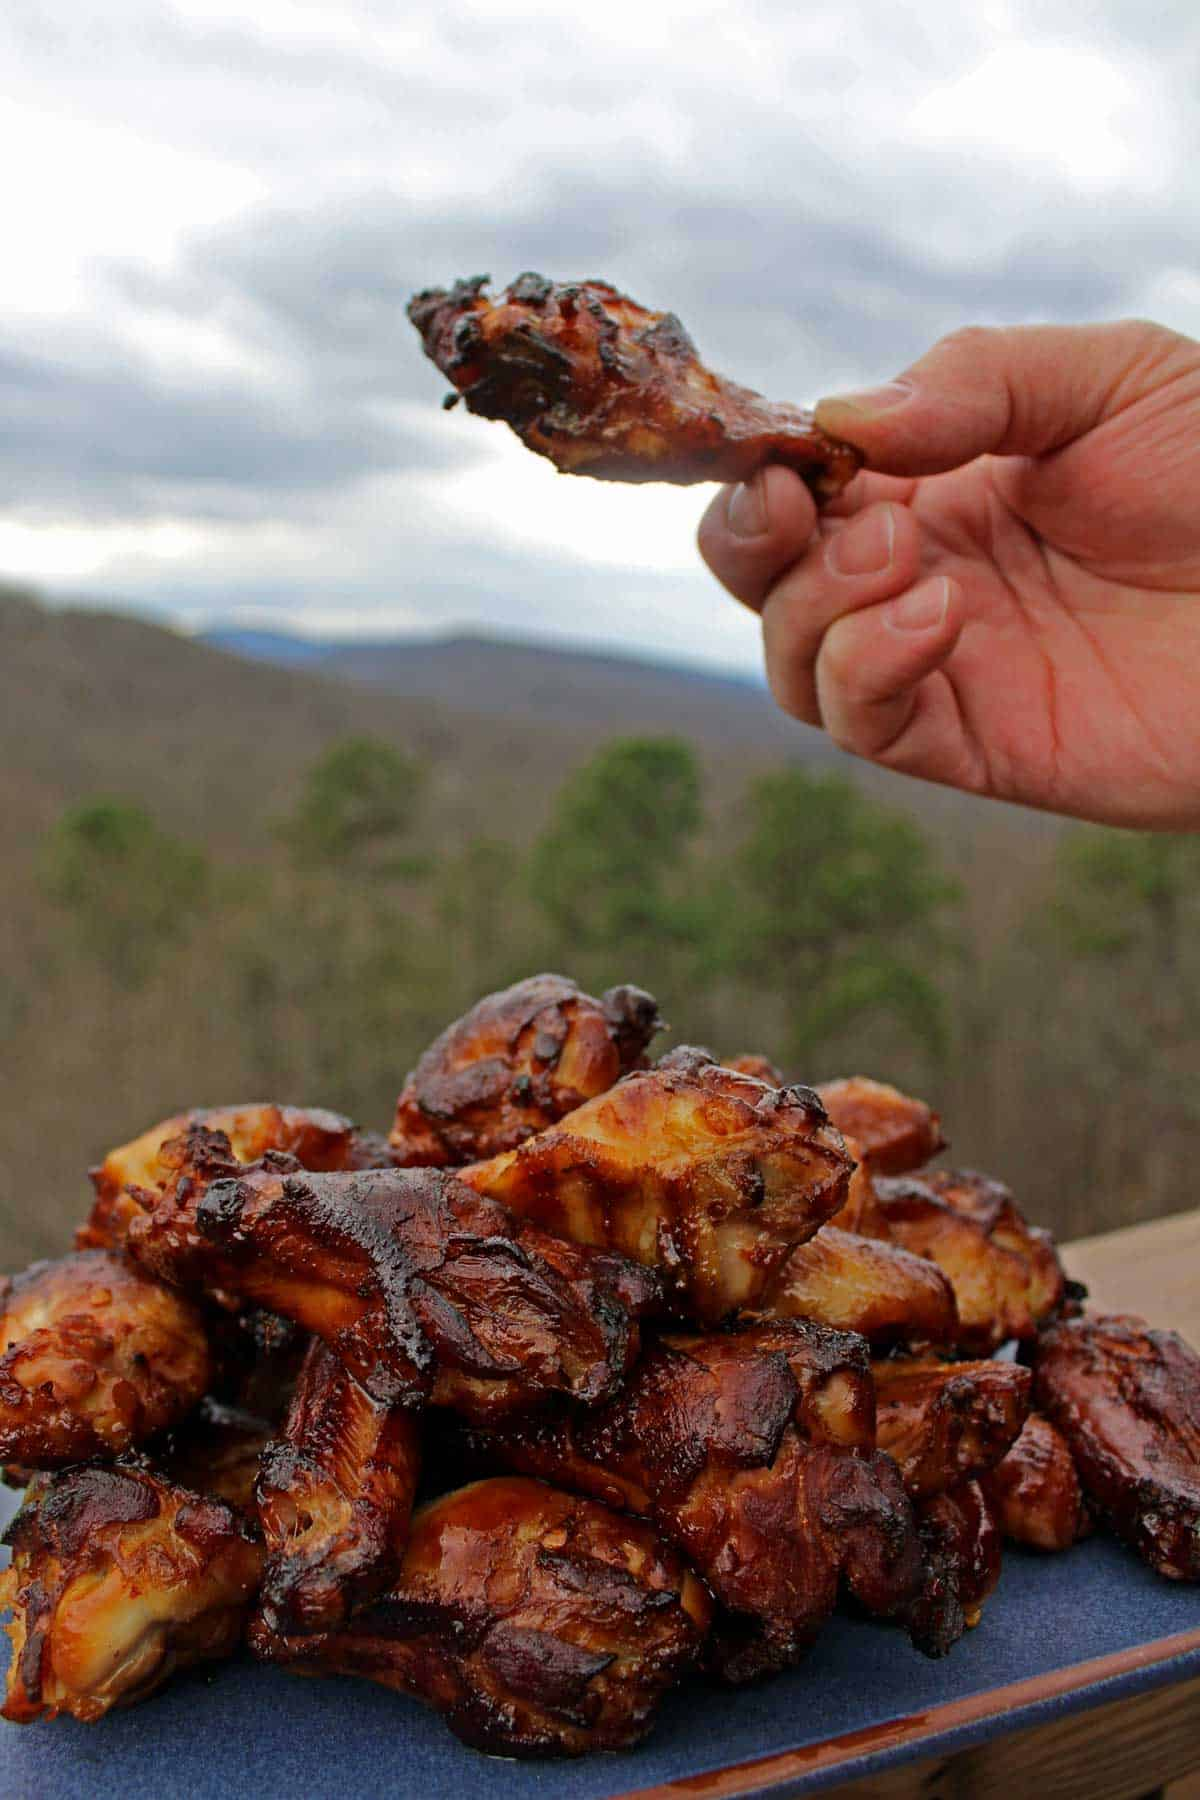 David's hand holding up a chicken wing over a pile of chicken wings on a plate in front of the mountain backdrop